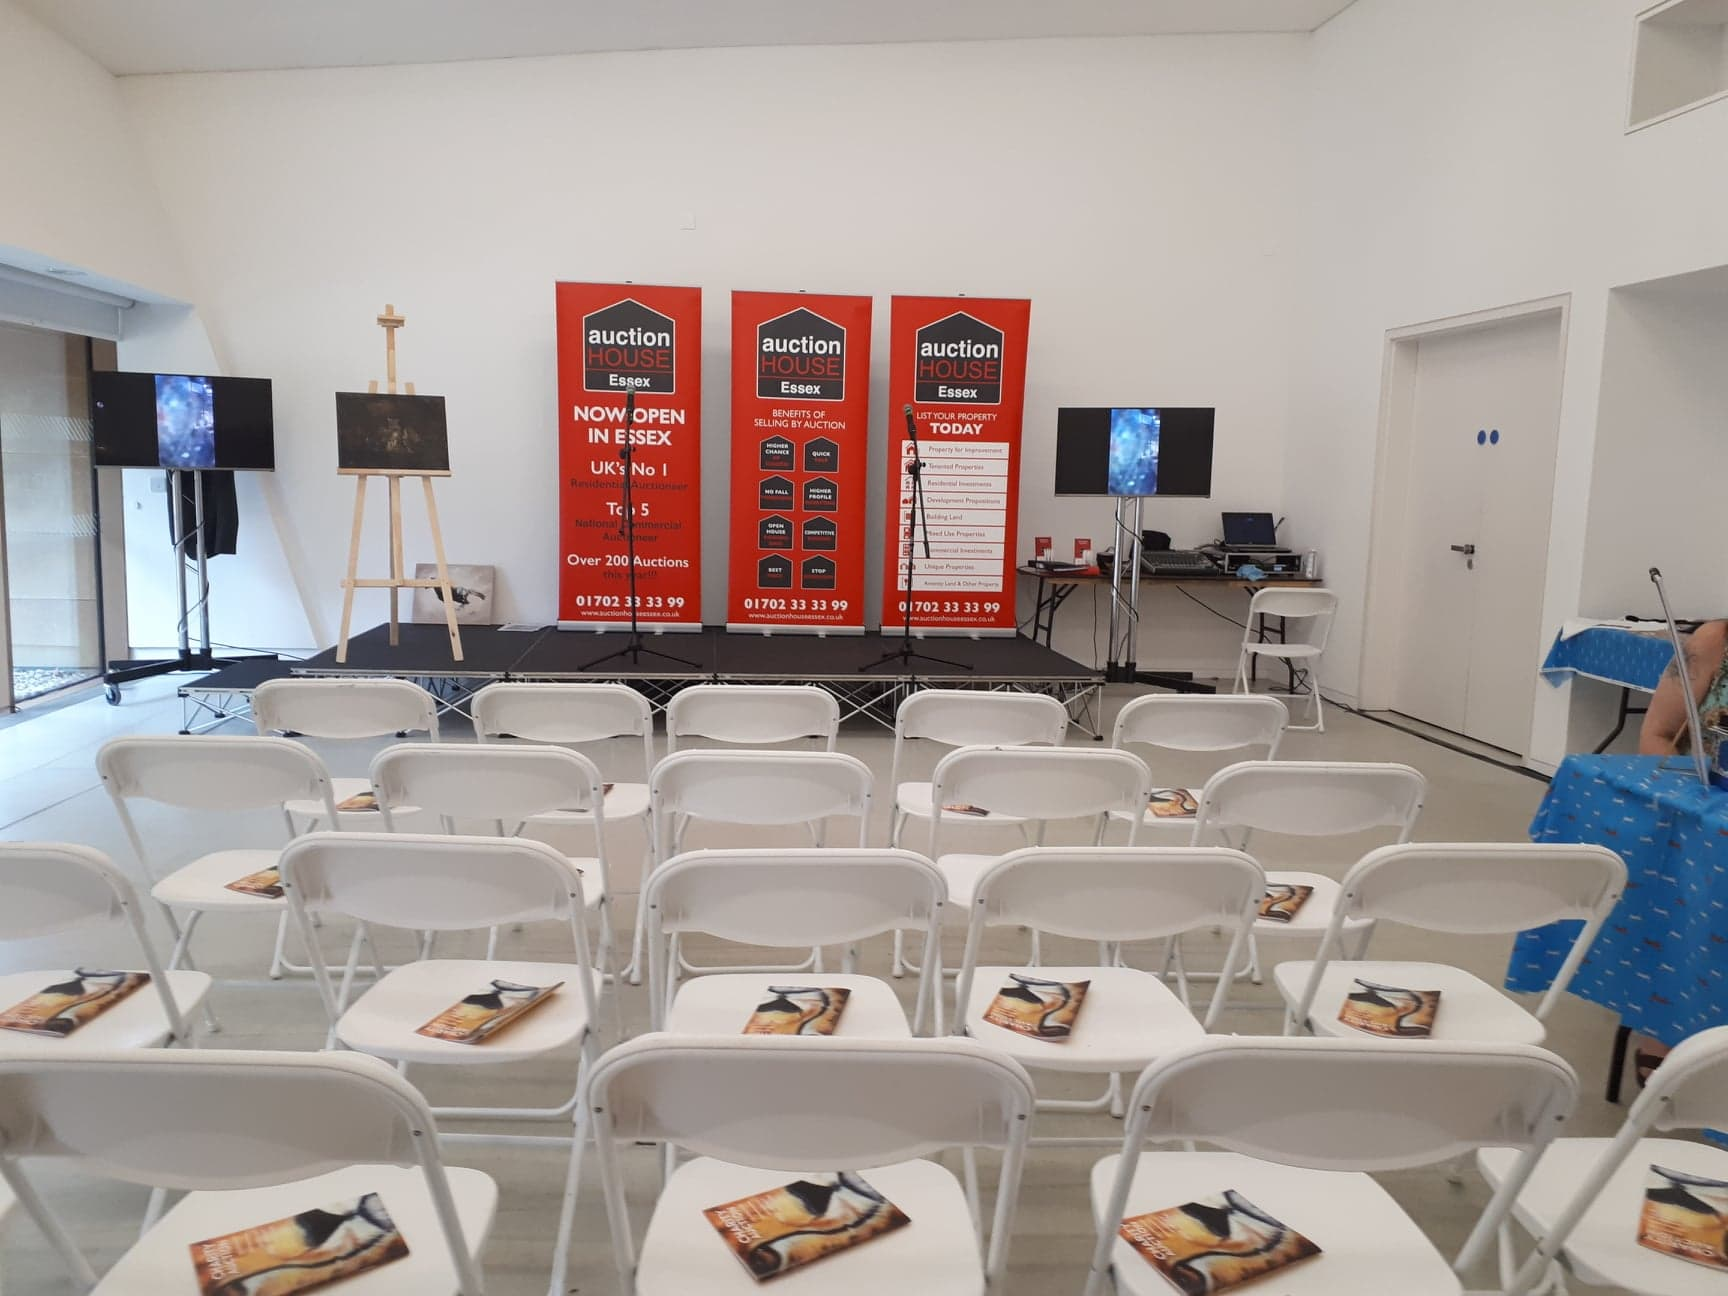 owap ar our fundraiser event set up auction section of the room firstsite colchester uk 20 JULY 2018.jpg